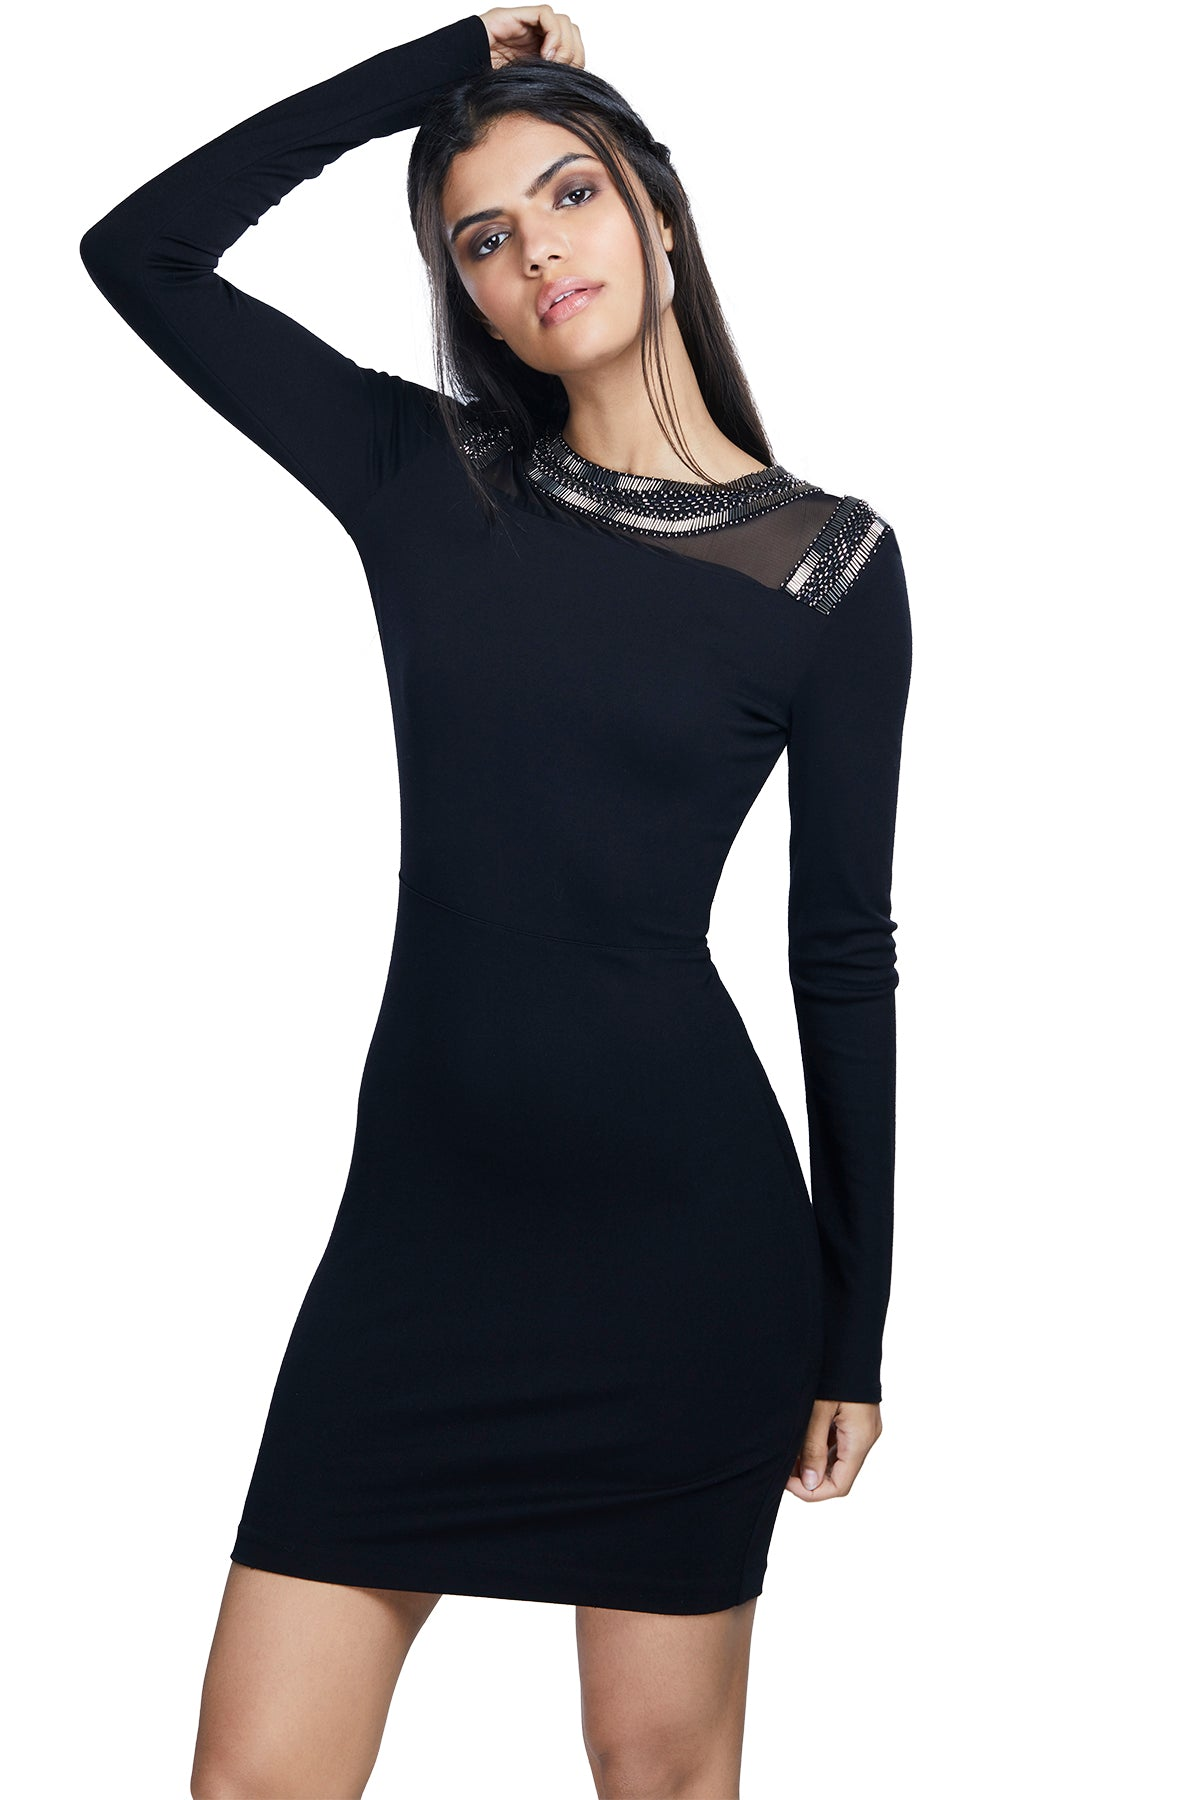 Bring sexy black in this black bodycon dress with silver pearls and bead embellishments on the neckline.